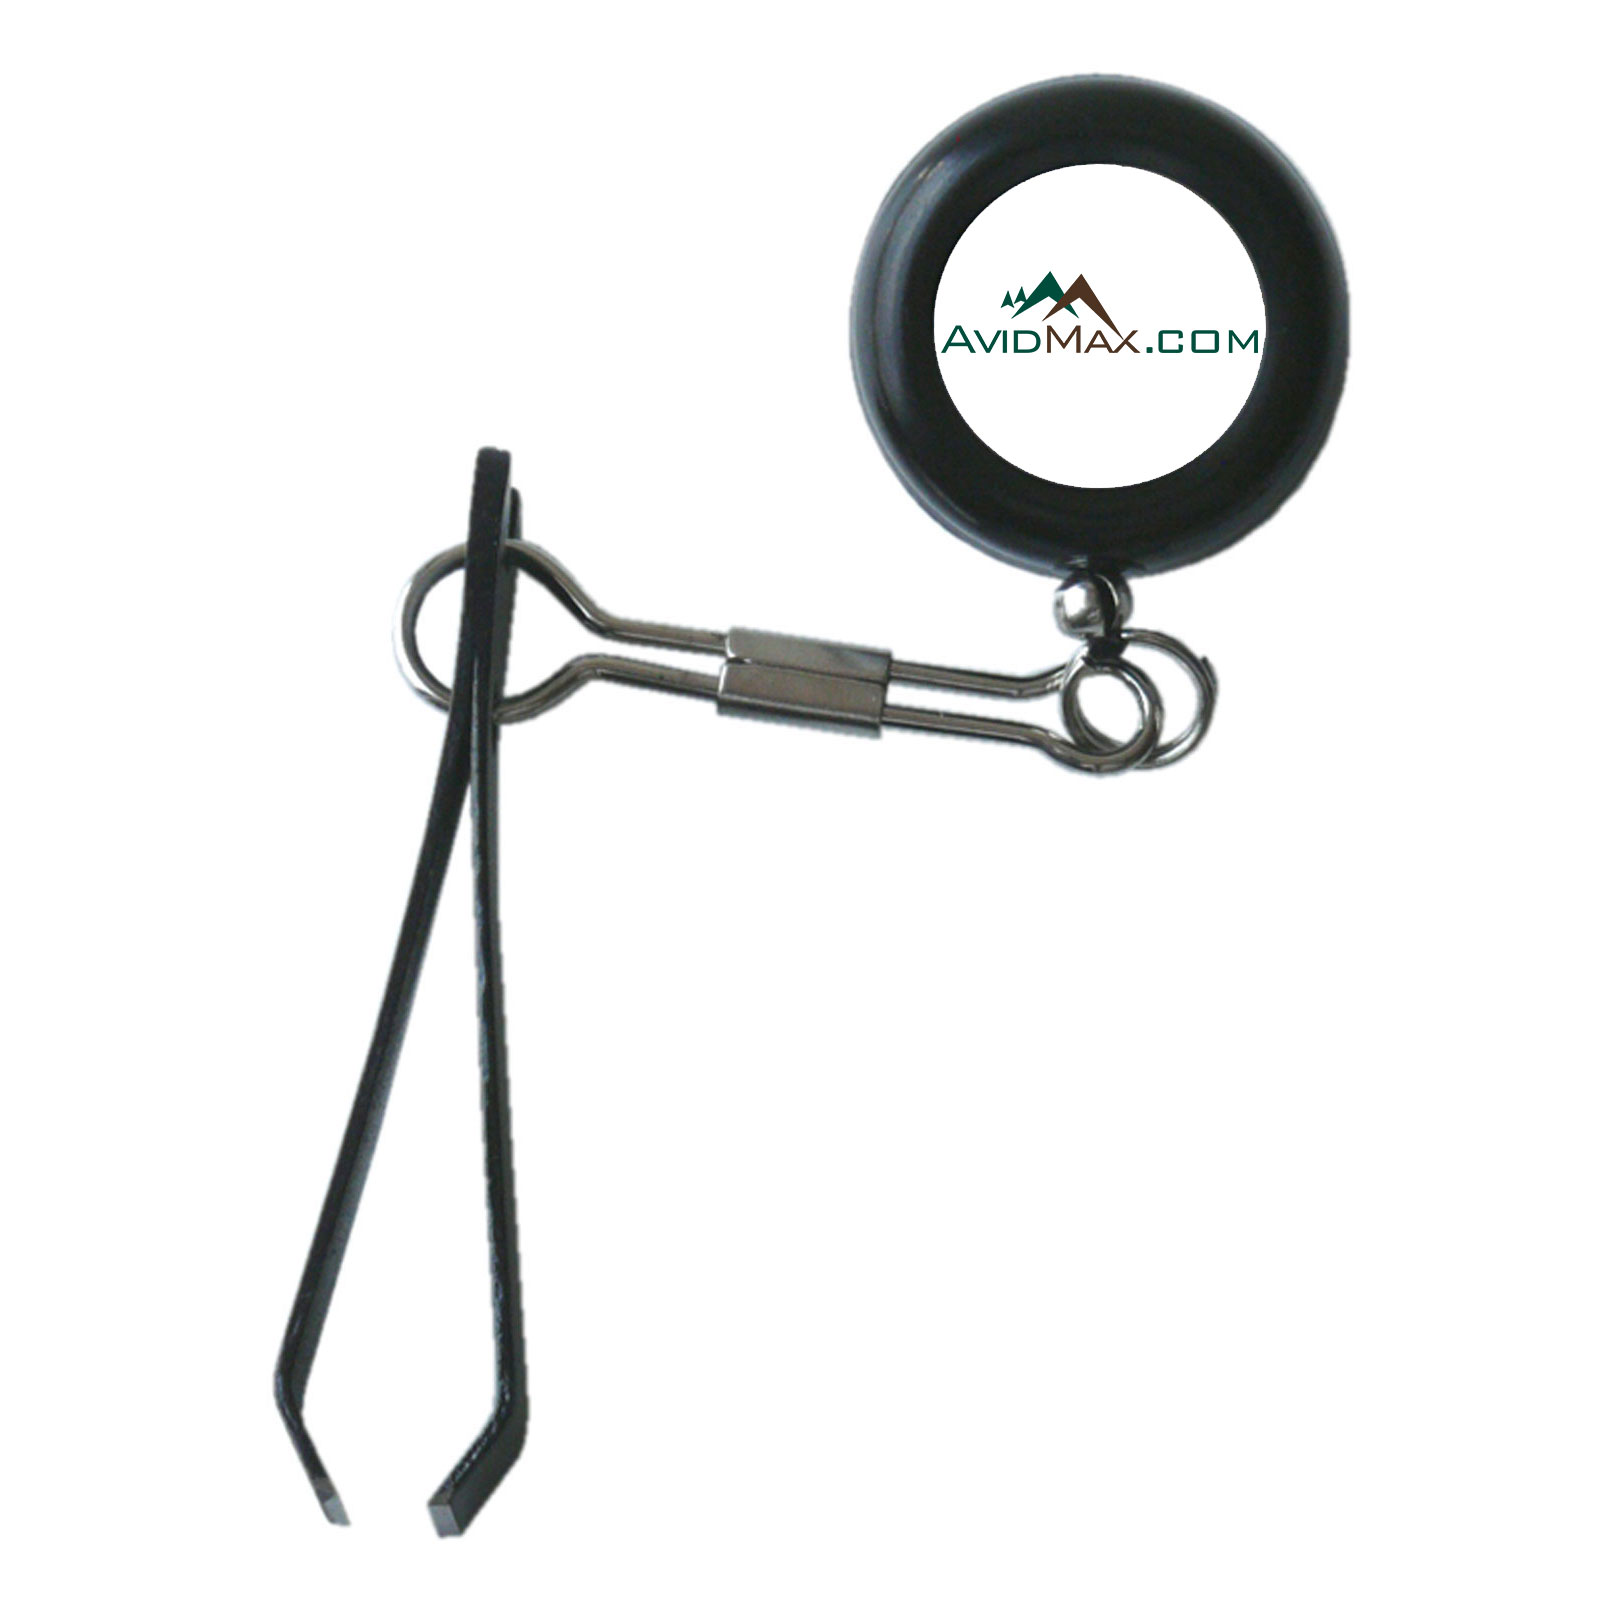 Avidmax outfitters clip on retractor zinger with nippers for Fly fishing nippers